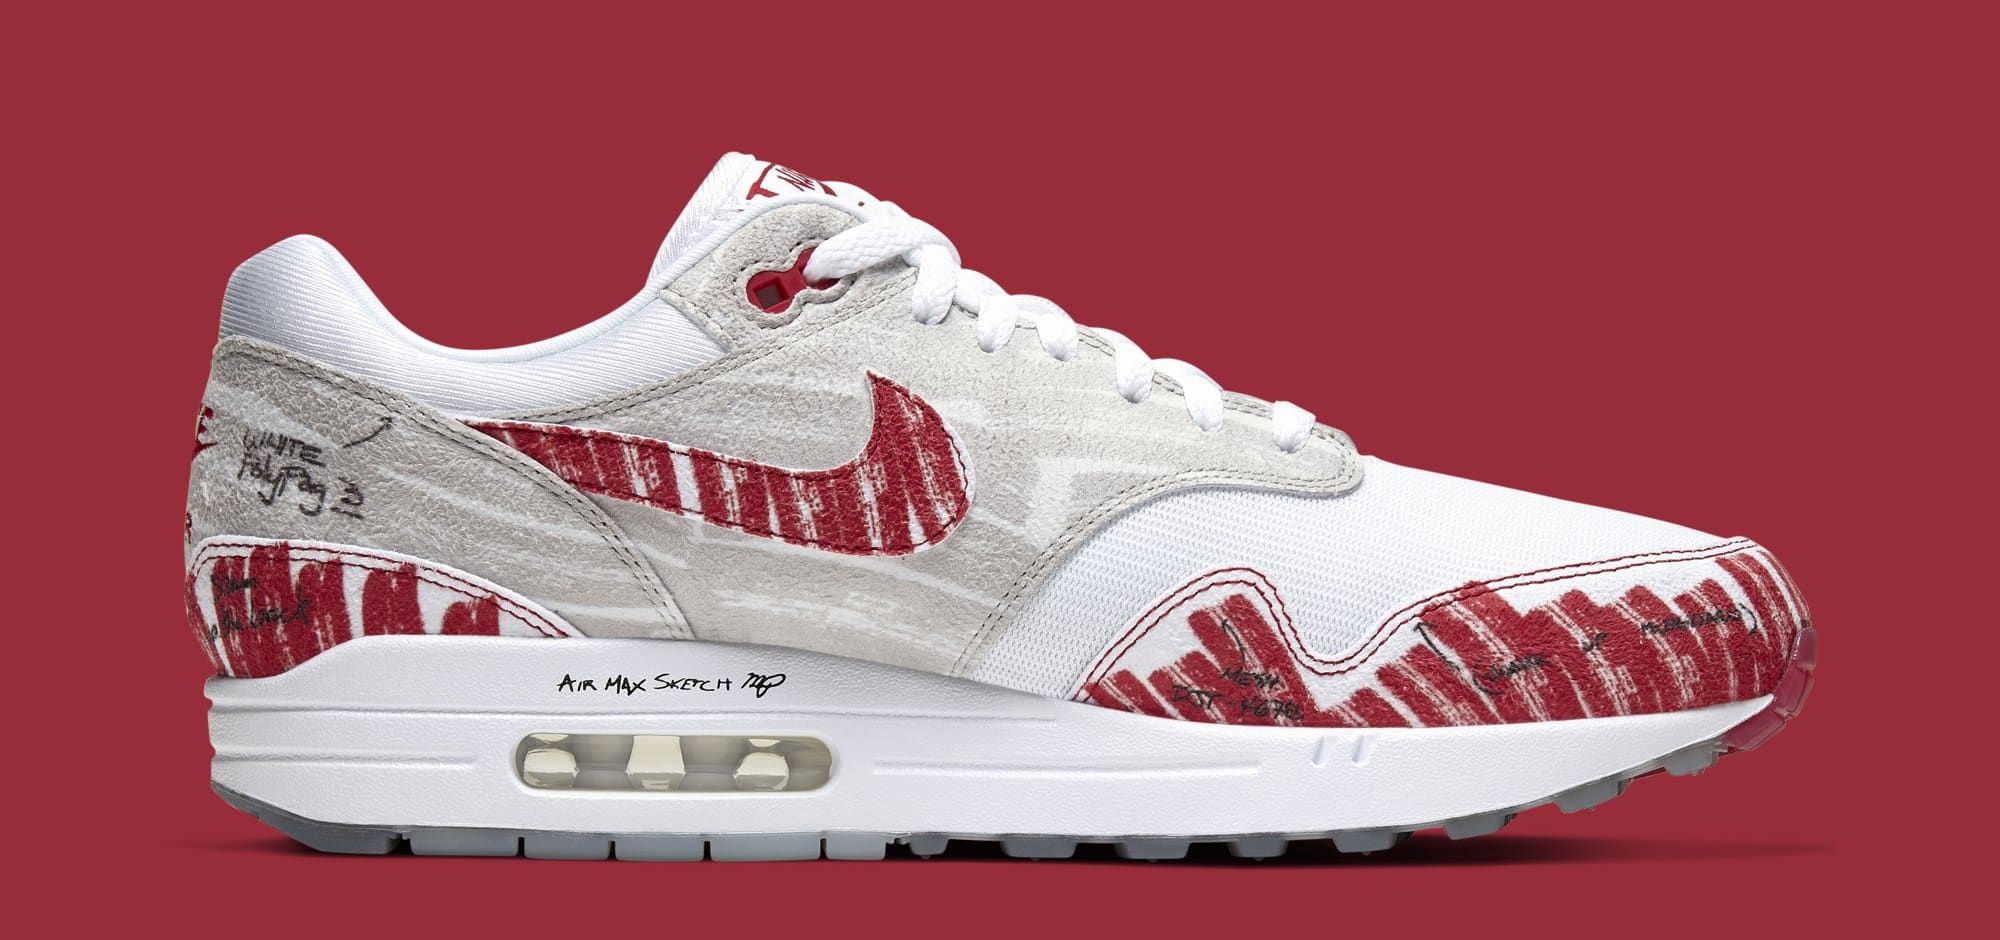 Nike Air Max 1 'Sketch to Shelf' CJ4286 101 Release Date